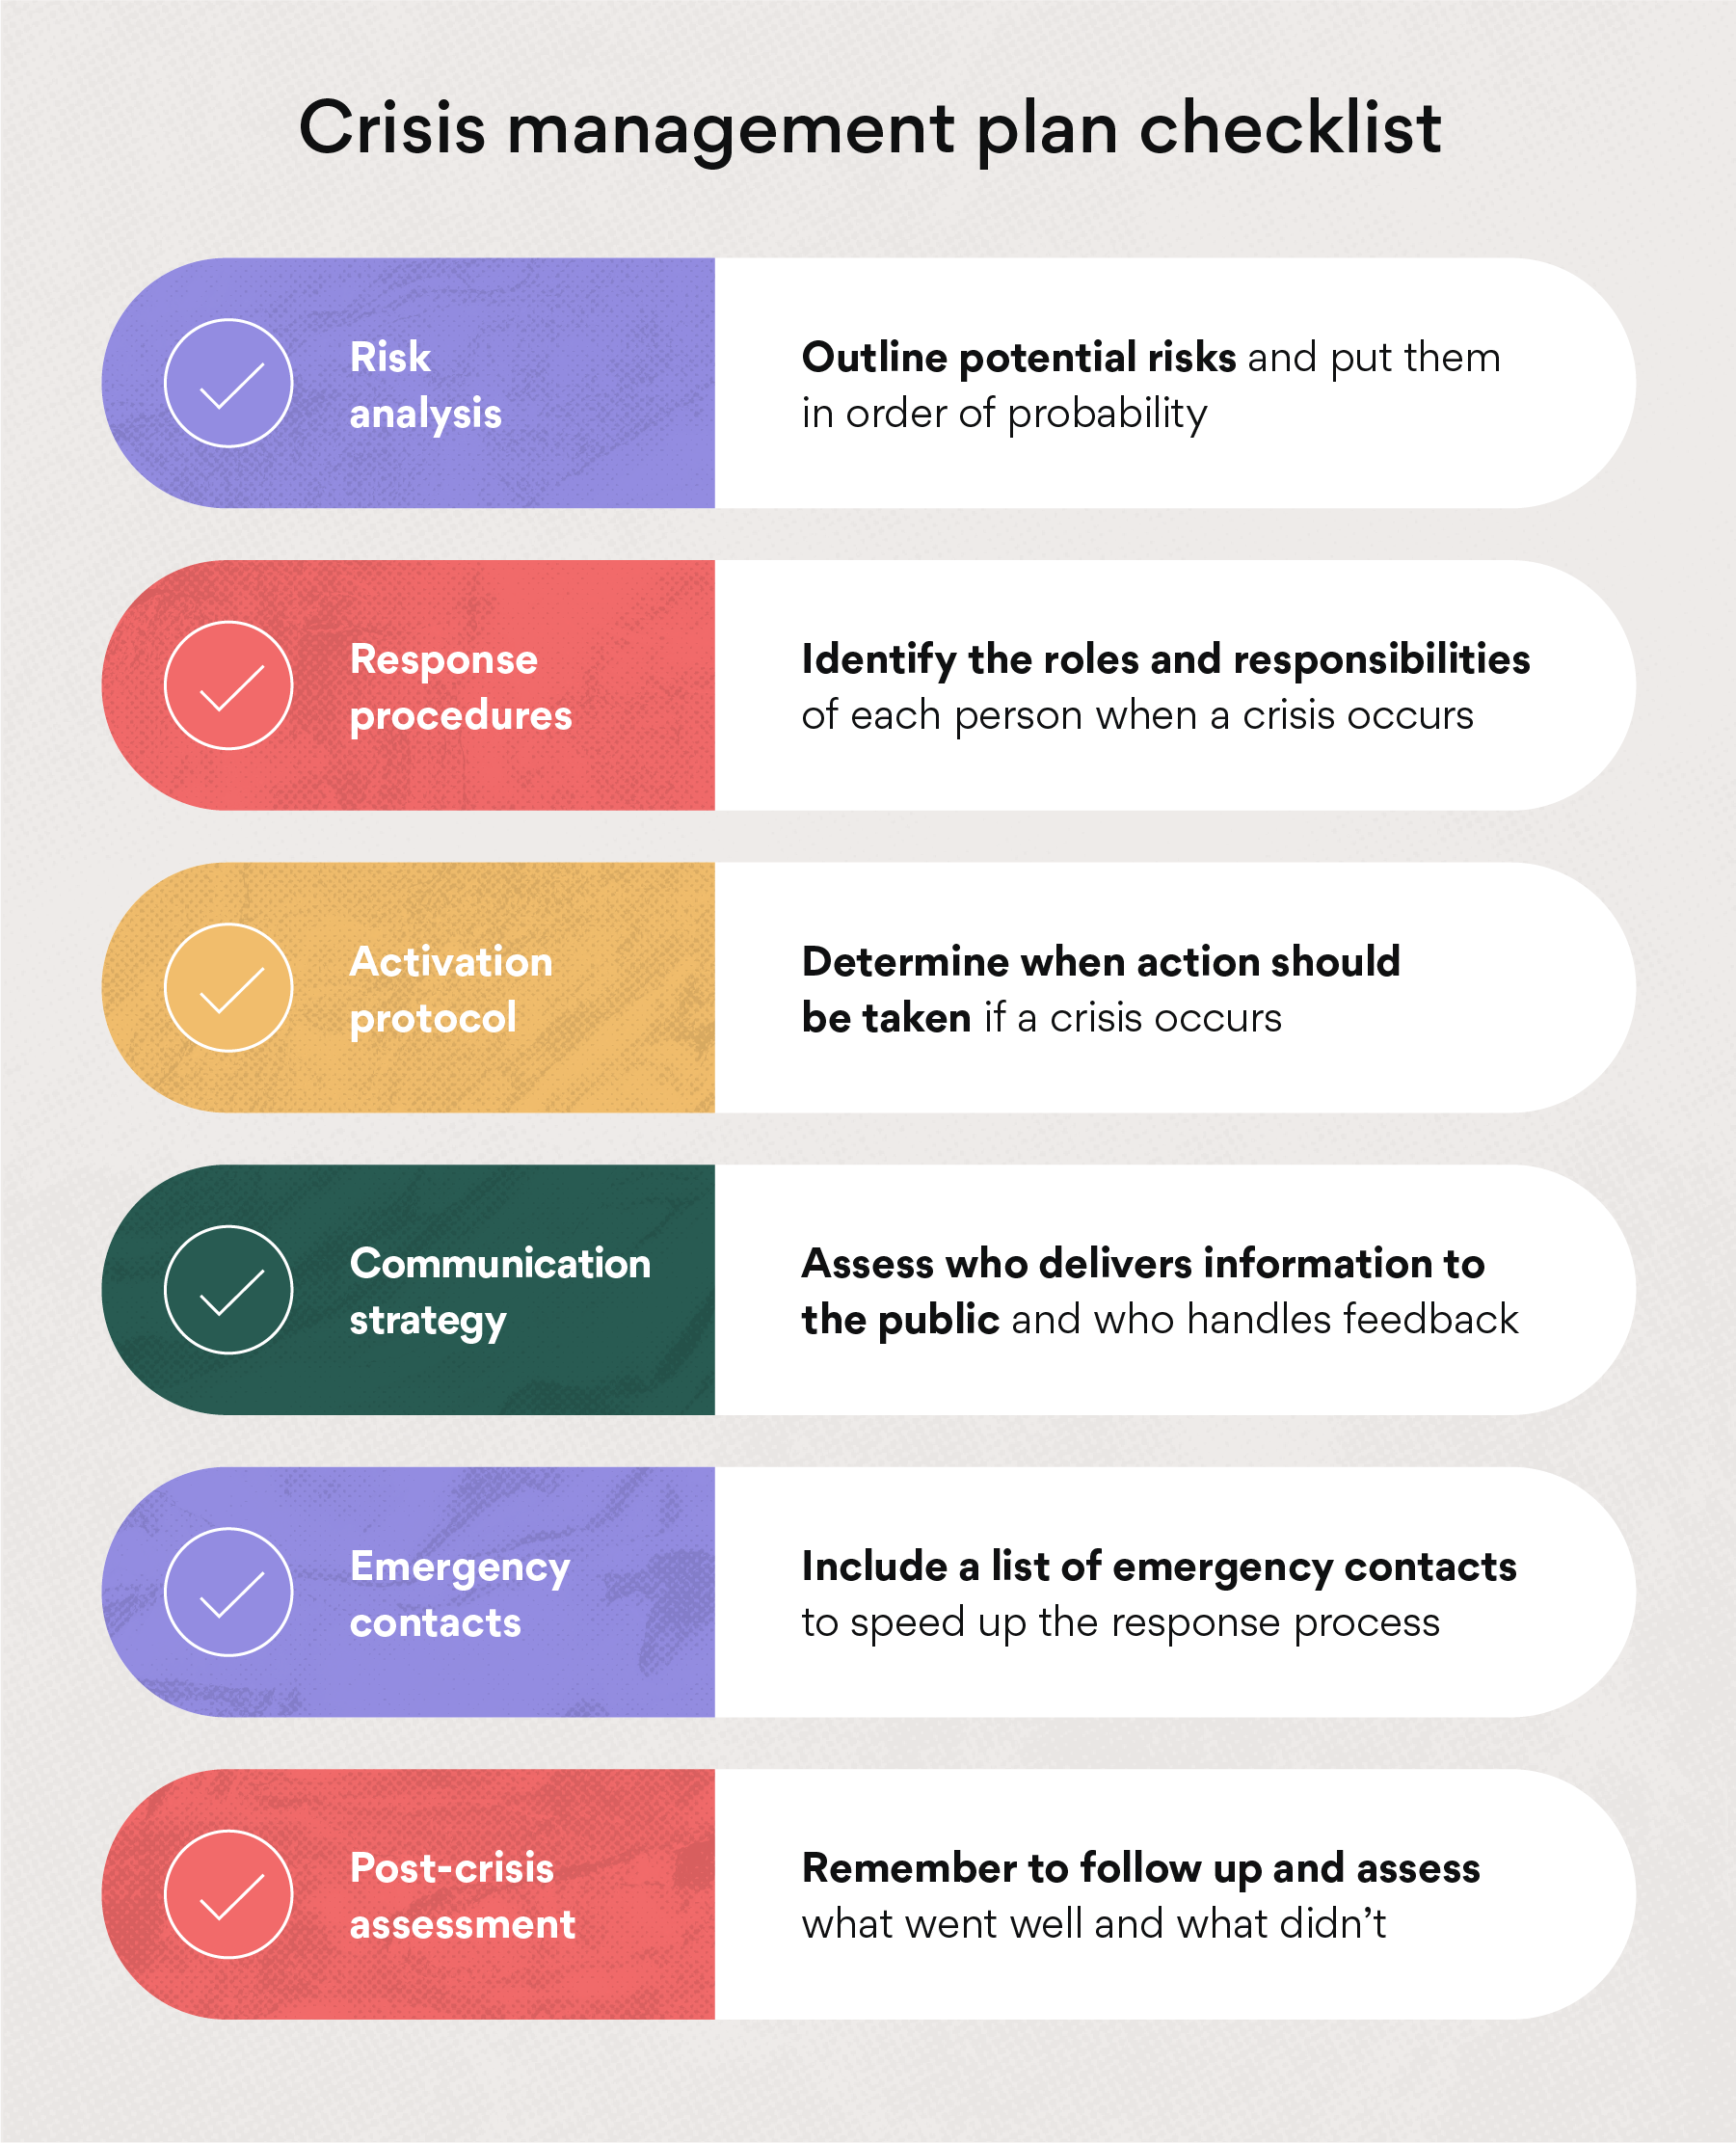 What to include in a crisis management plan